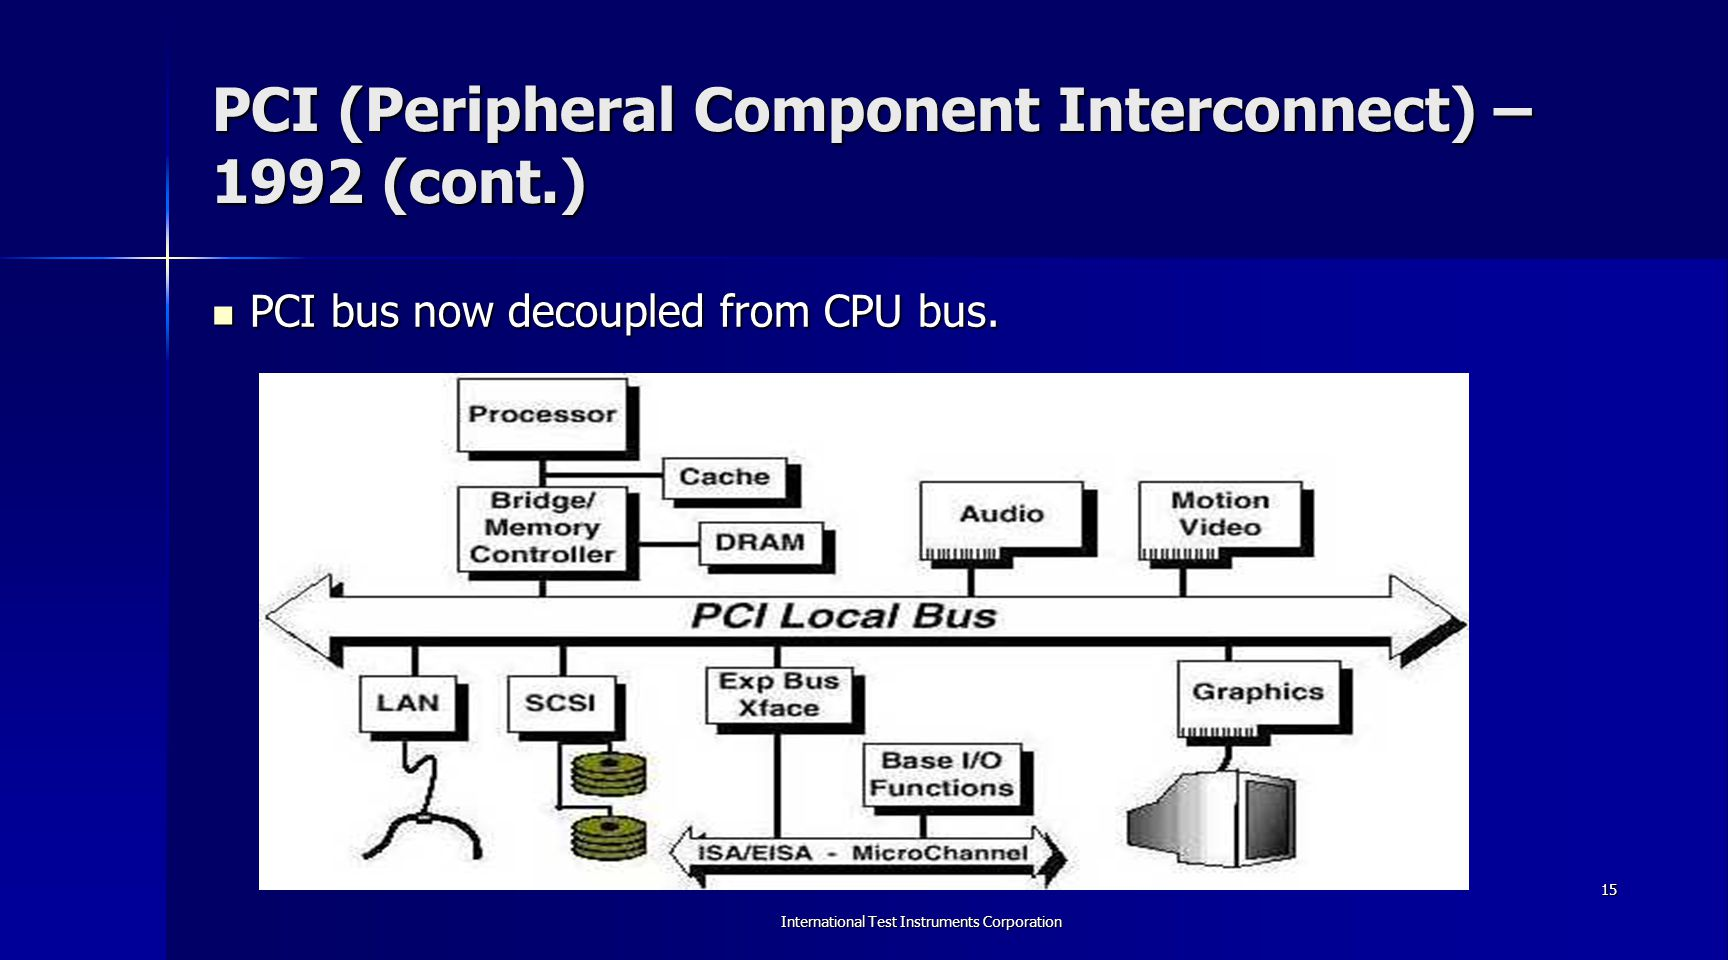 PCI (Peripheral Component Interconnect) – 1992 (cont.)